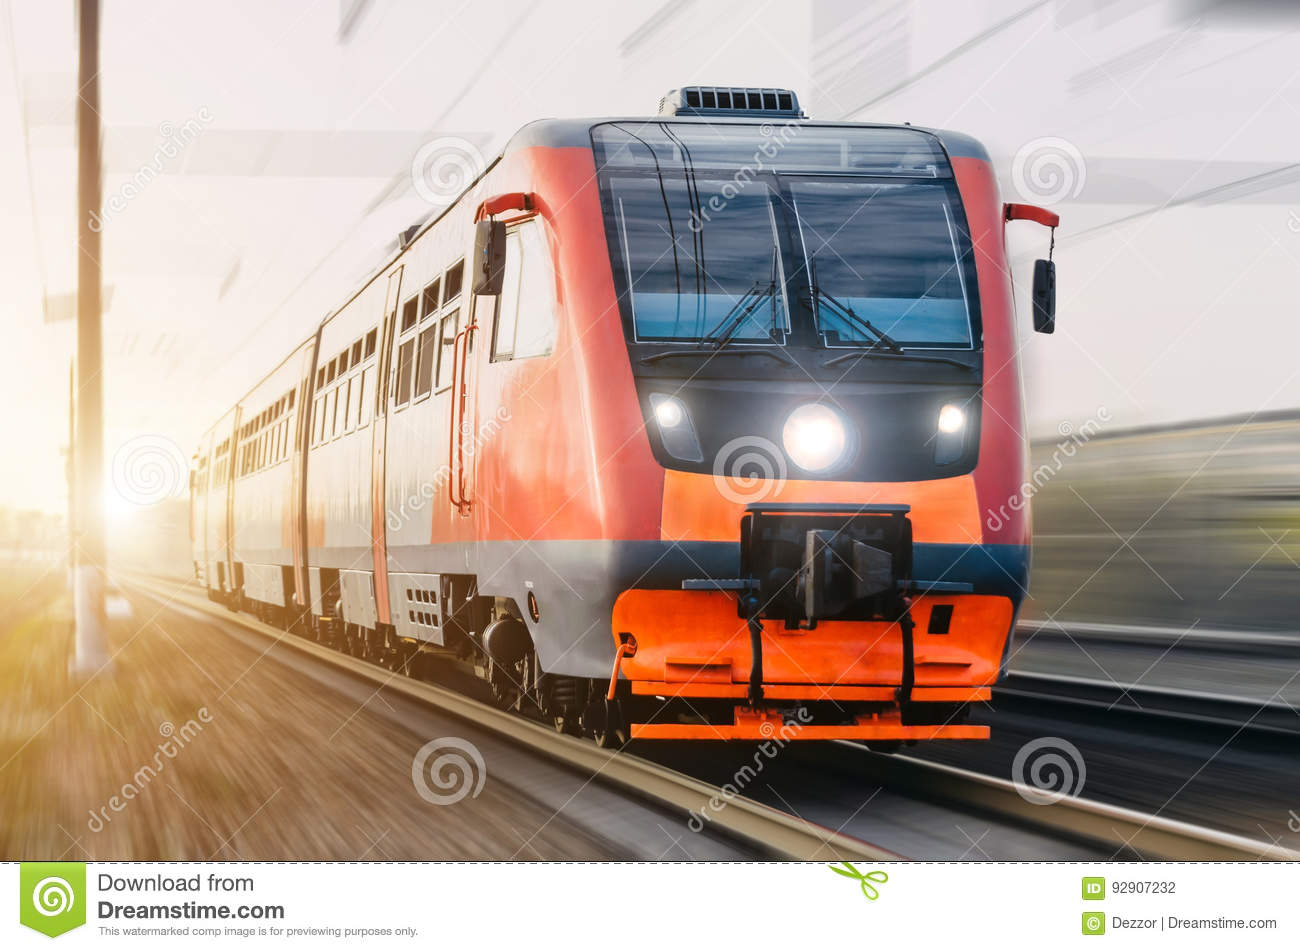 High-speed red passenger train rushing through the railway in the evening at sunset.